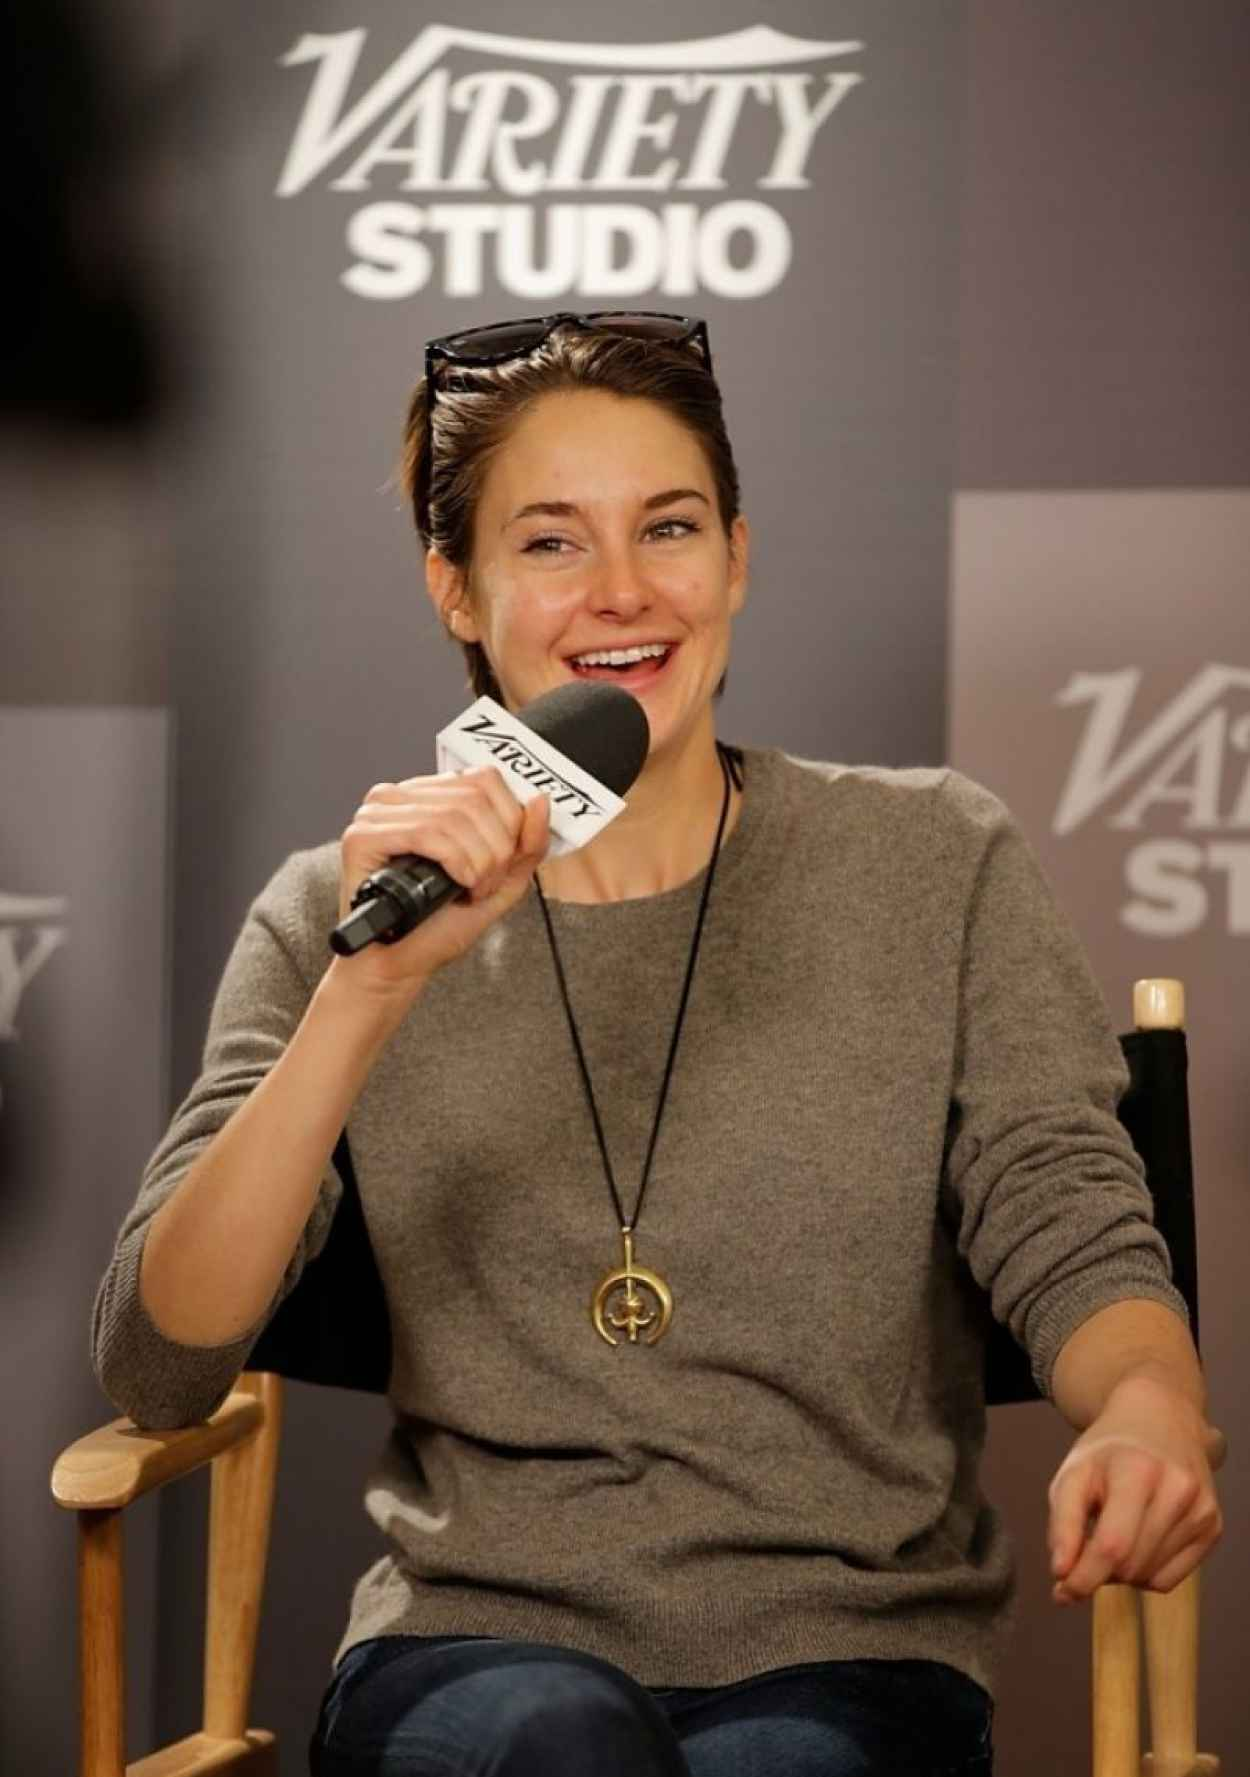 Shailene Woodley at Variety Studio: Sundance Edition in Park City, Utah January 2015-1